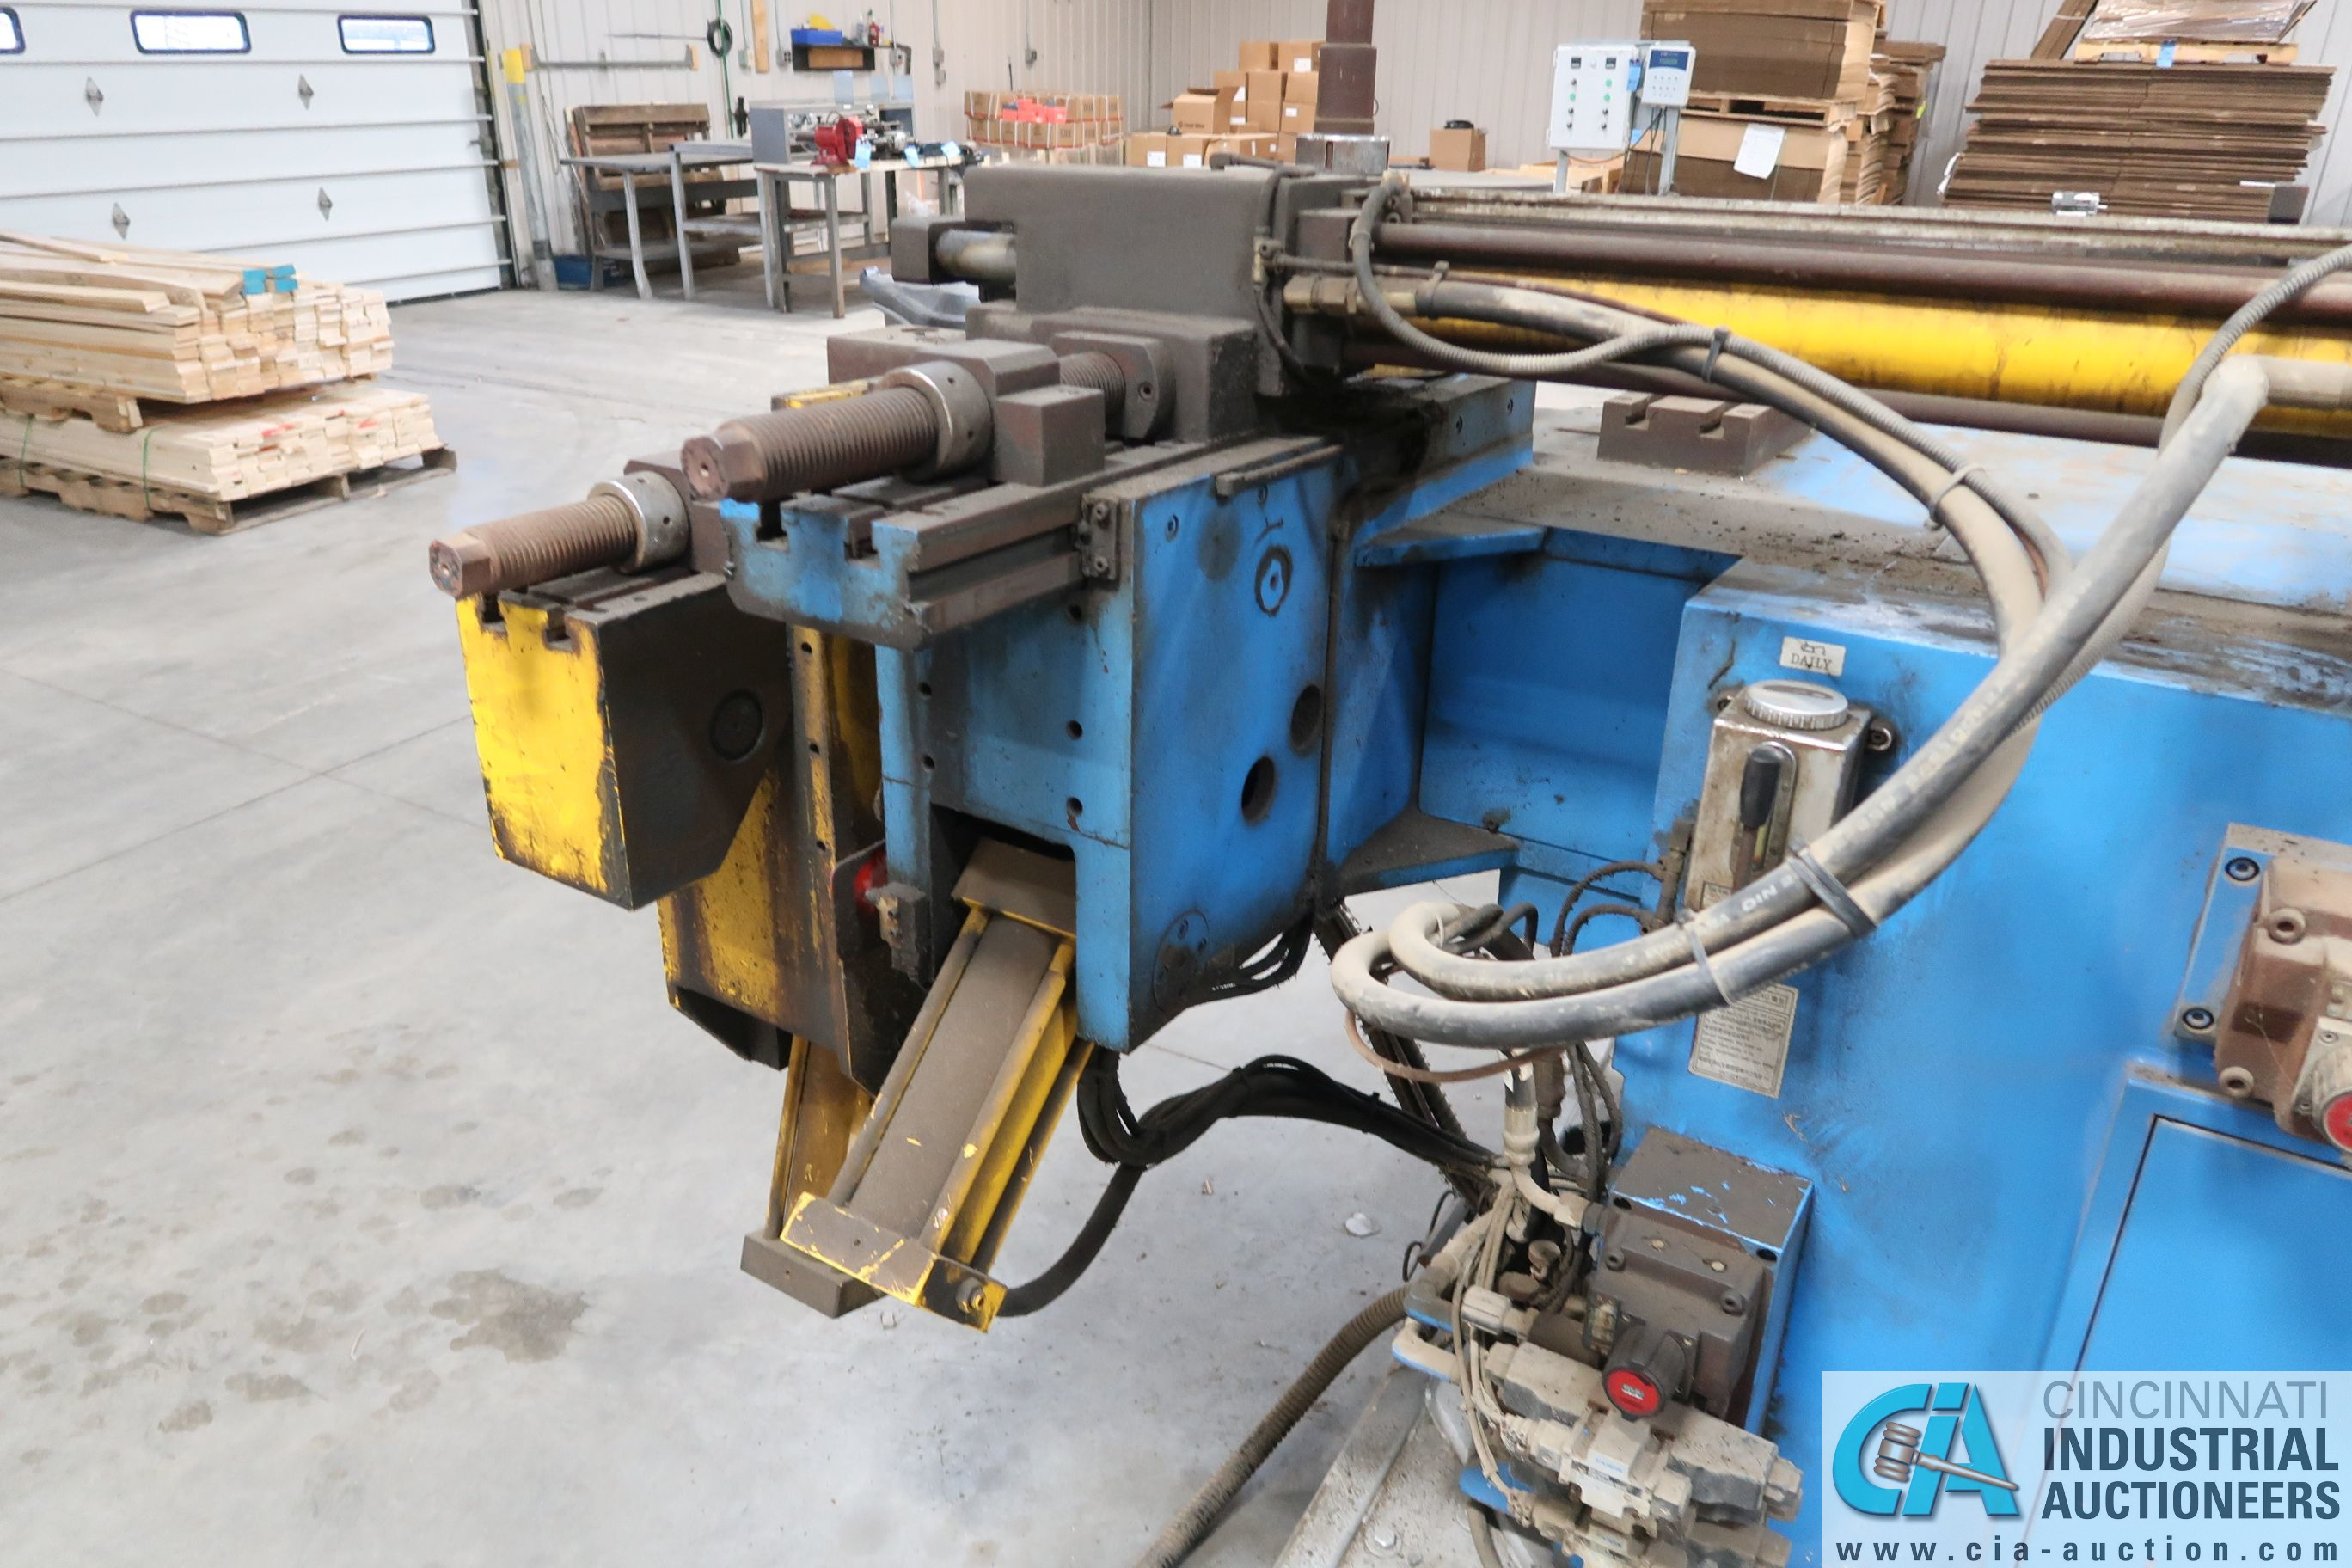 """4"""" HORN MODEL A100 TNCB CNC HYDRAULIC TUBE BENDER; S/N 080334-434B, CAPACITIES: 4"""" X .217 MILL STEEL - Image 7 of 11"""